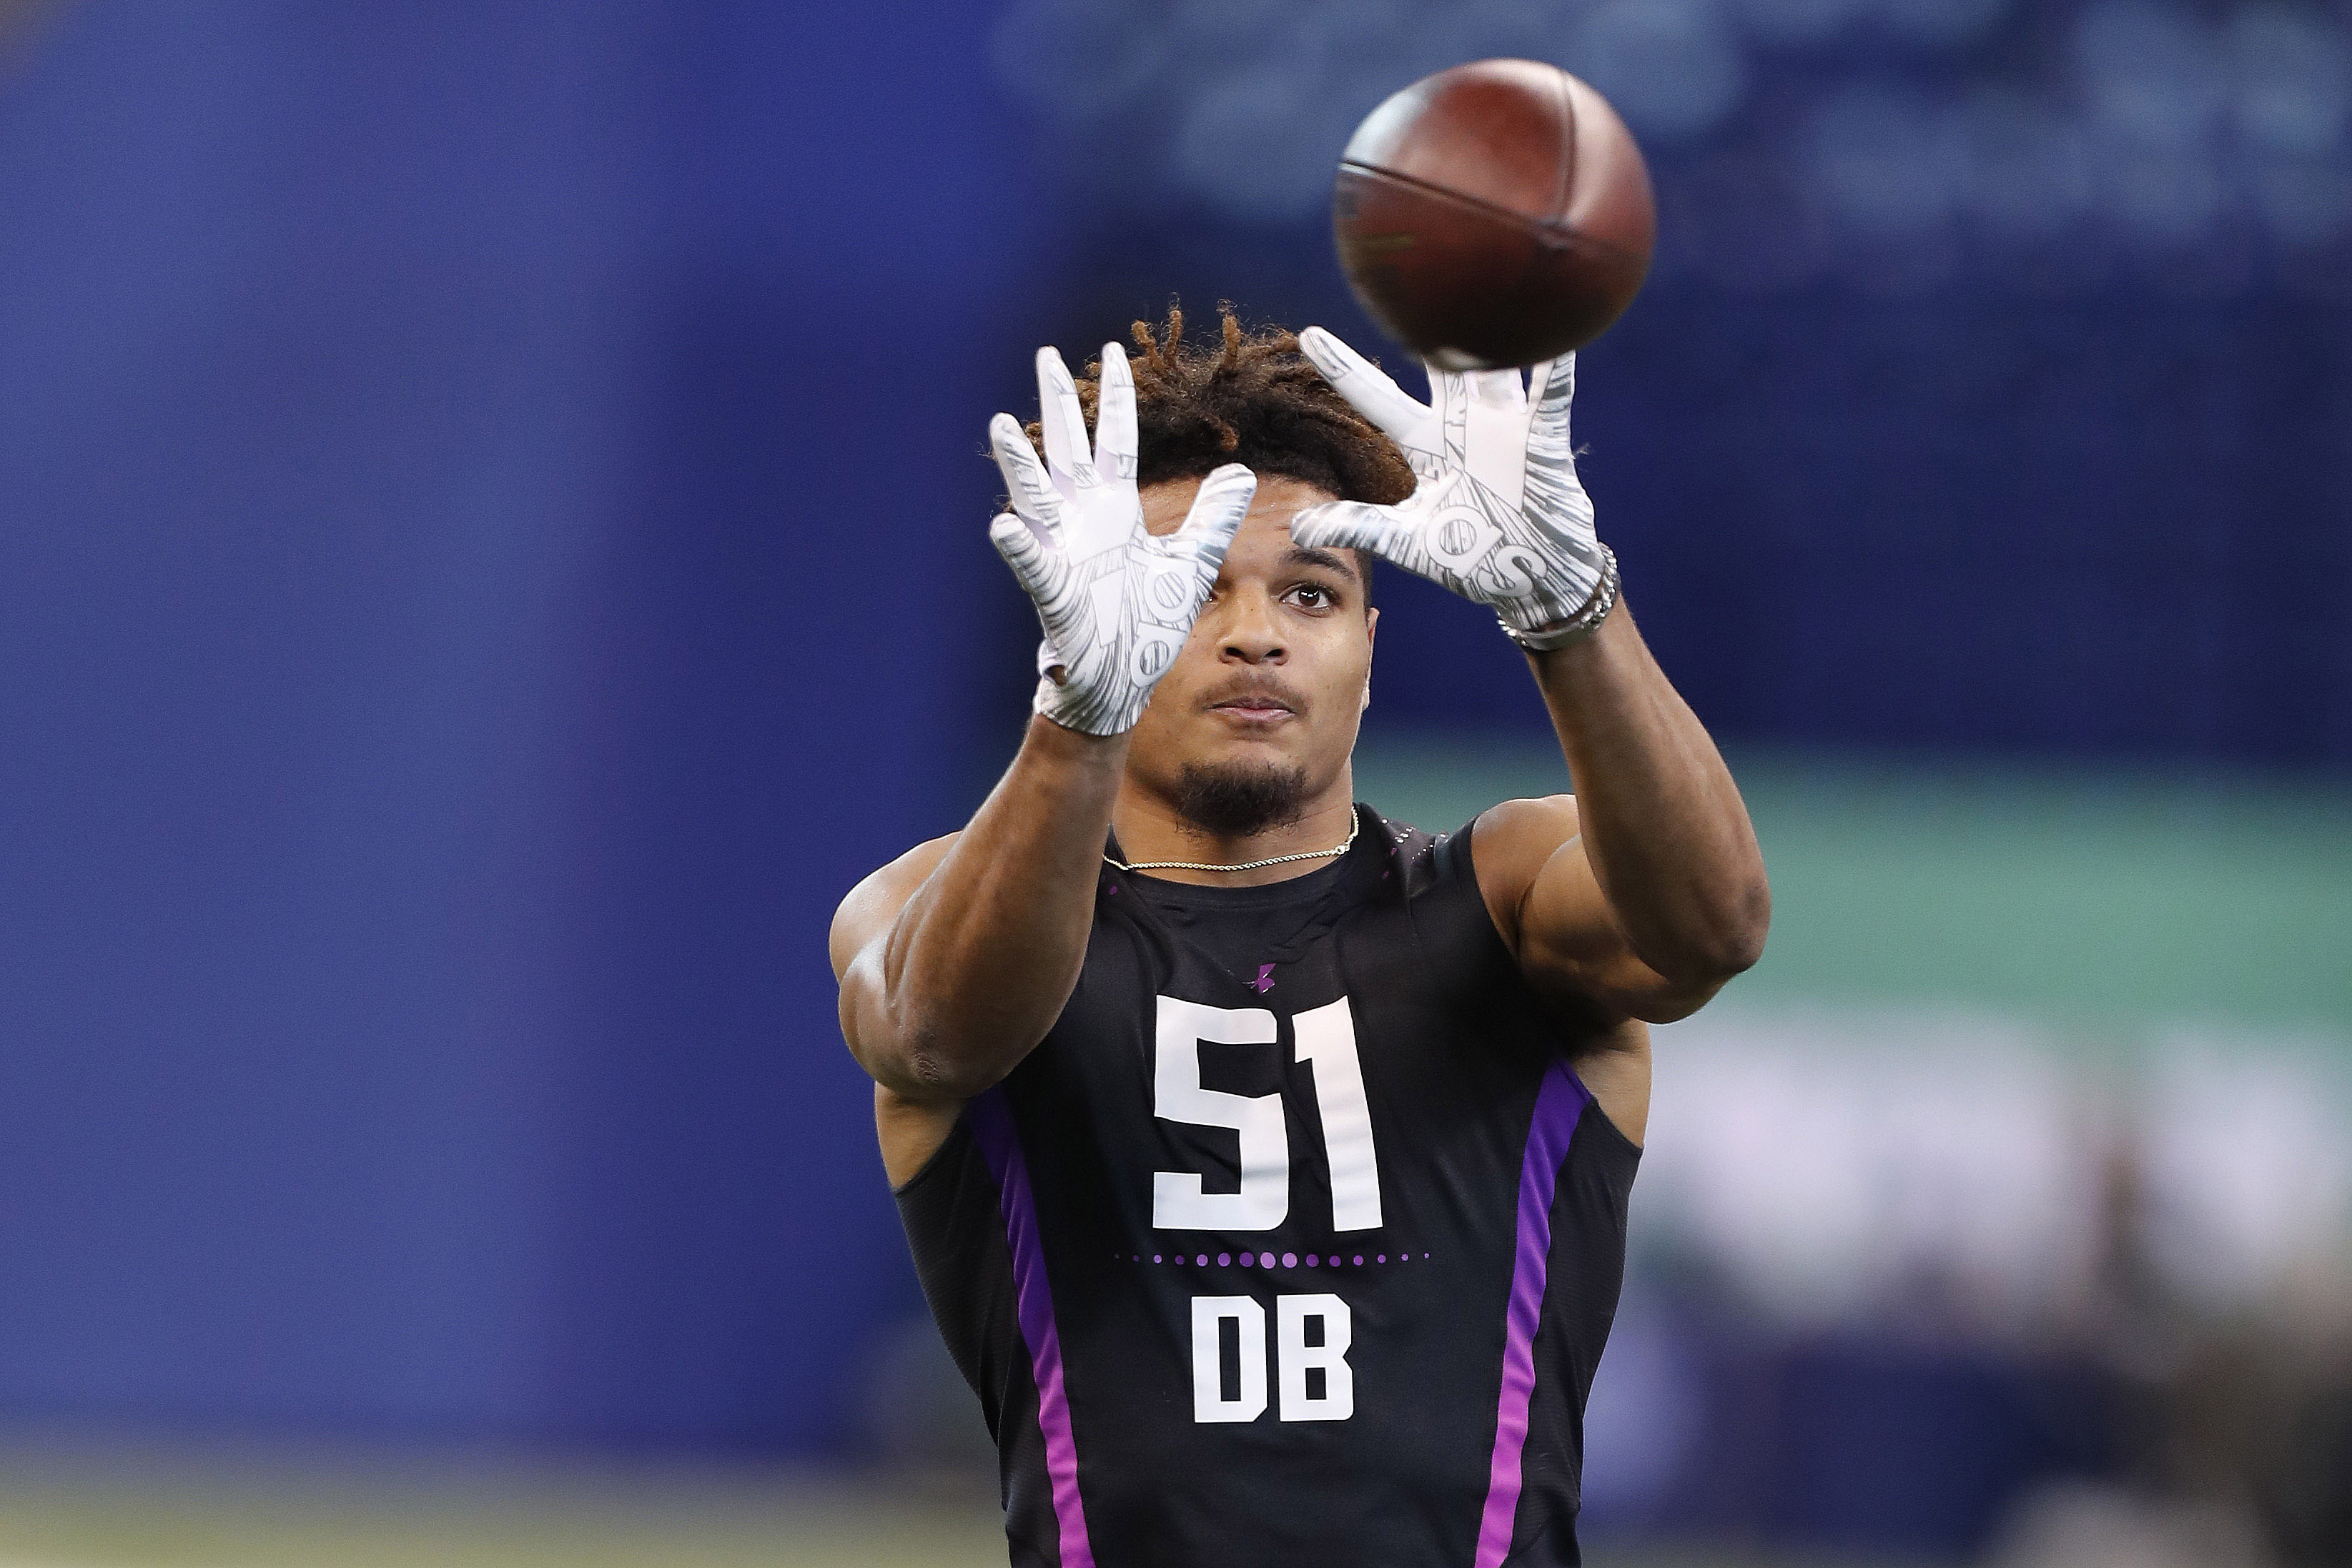 Dolphins draft Alabama's Minkah Fitzpatrick in first round